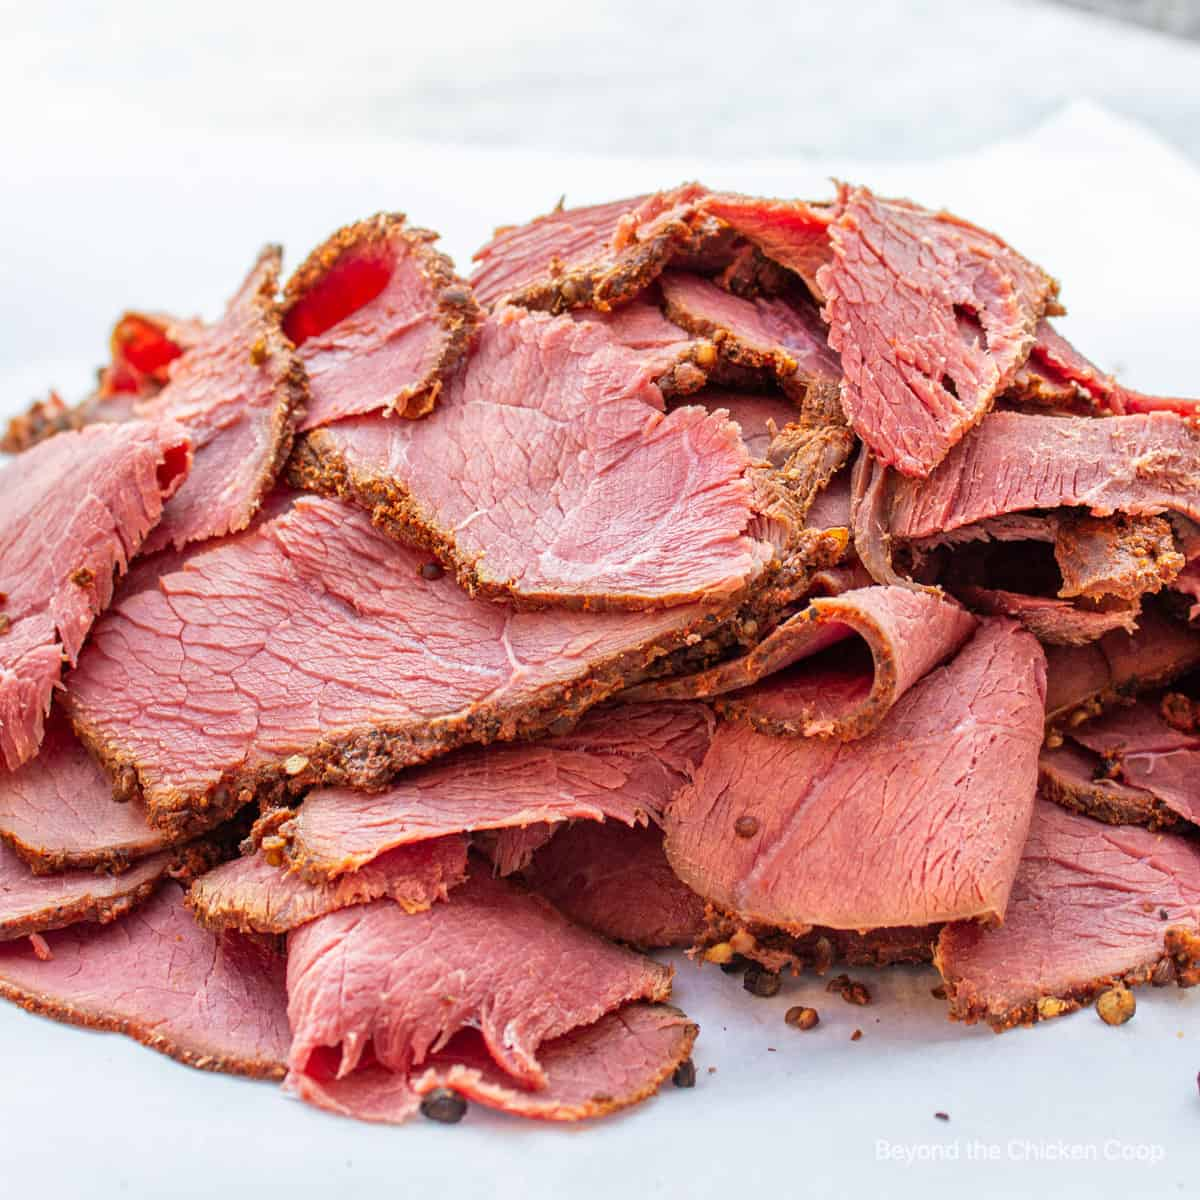 Slices of homemade pastrami on butcher paper.